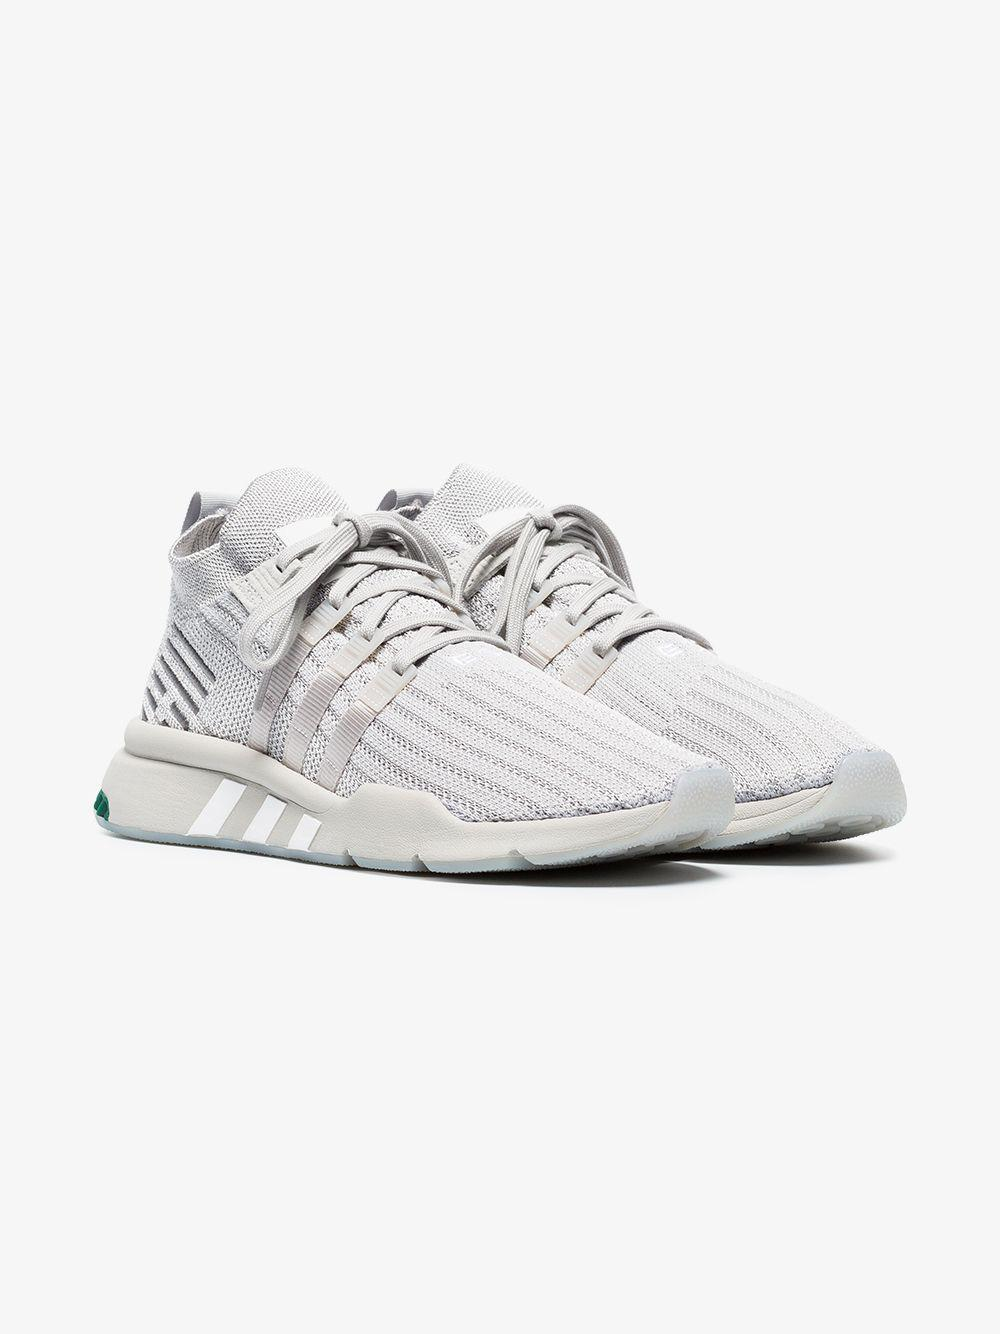 san francisco 8f88b 2a073 adidas. Mens Gray Grey Eqt Bask Adv Trainers